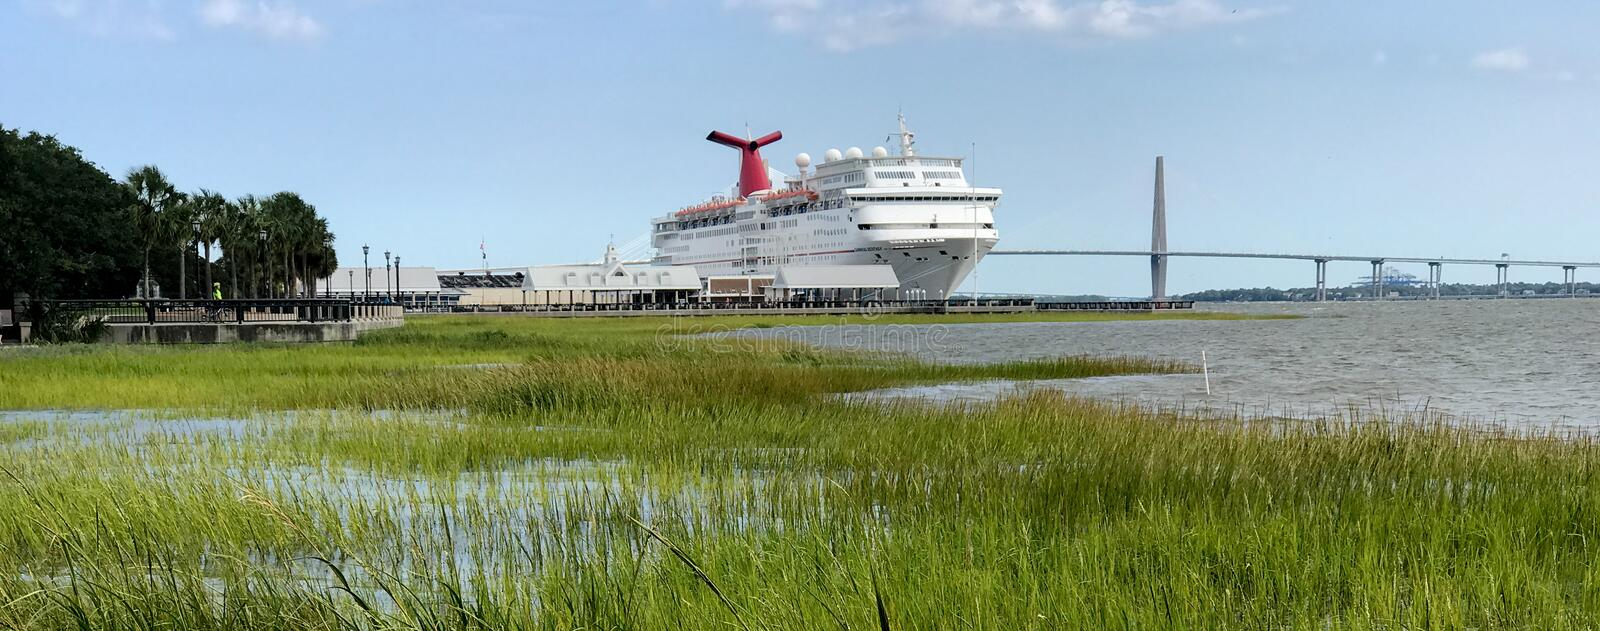 Carnival Ecstacy. The Carnival Cruise ship Ecstacy is docked in its home port of Charleston, South Carolina royalty free stock images